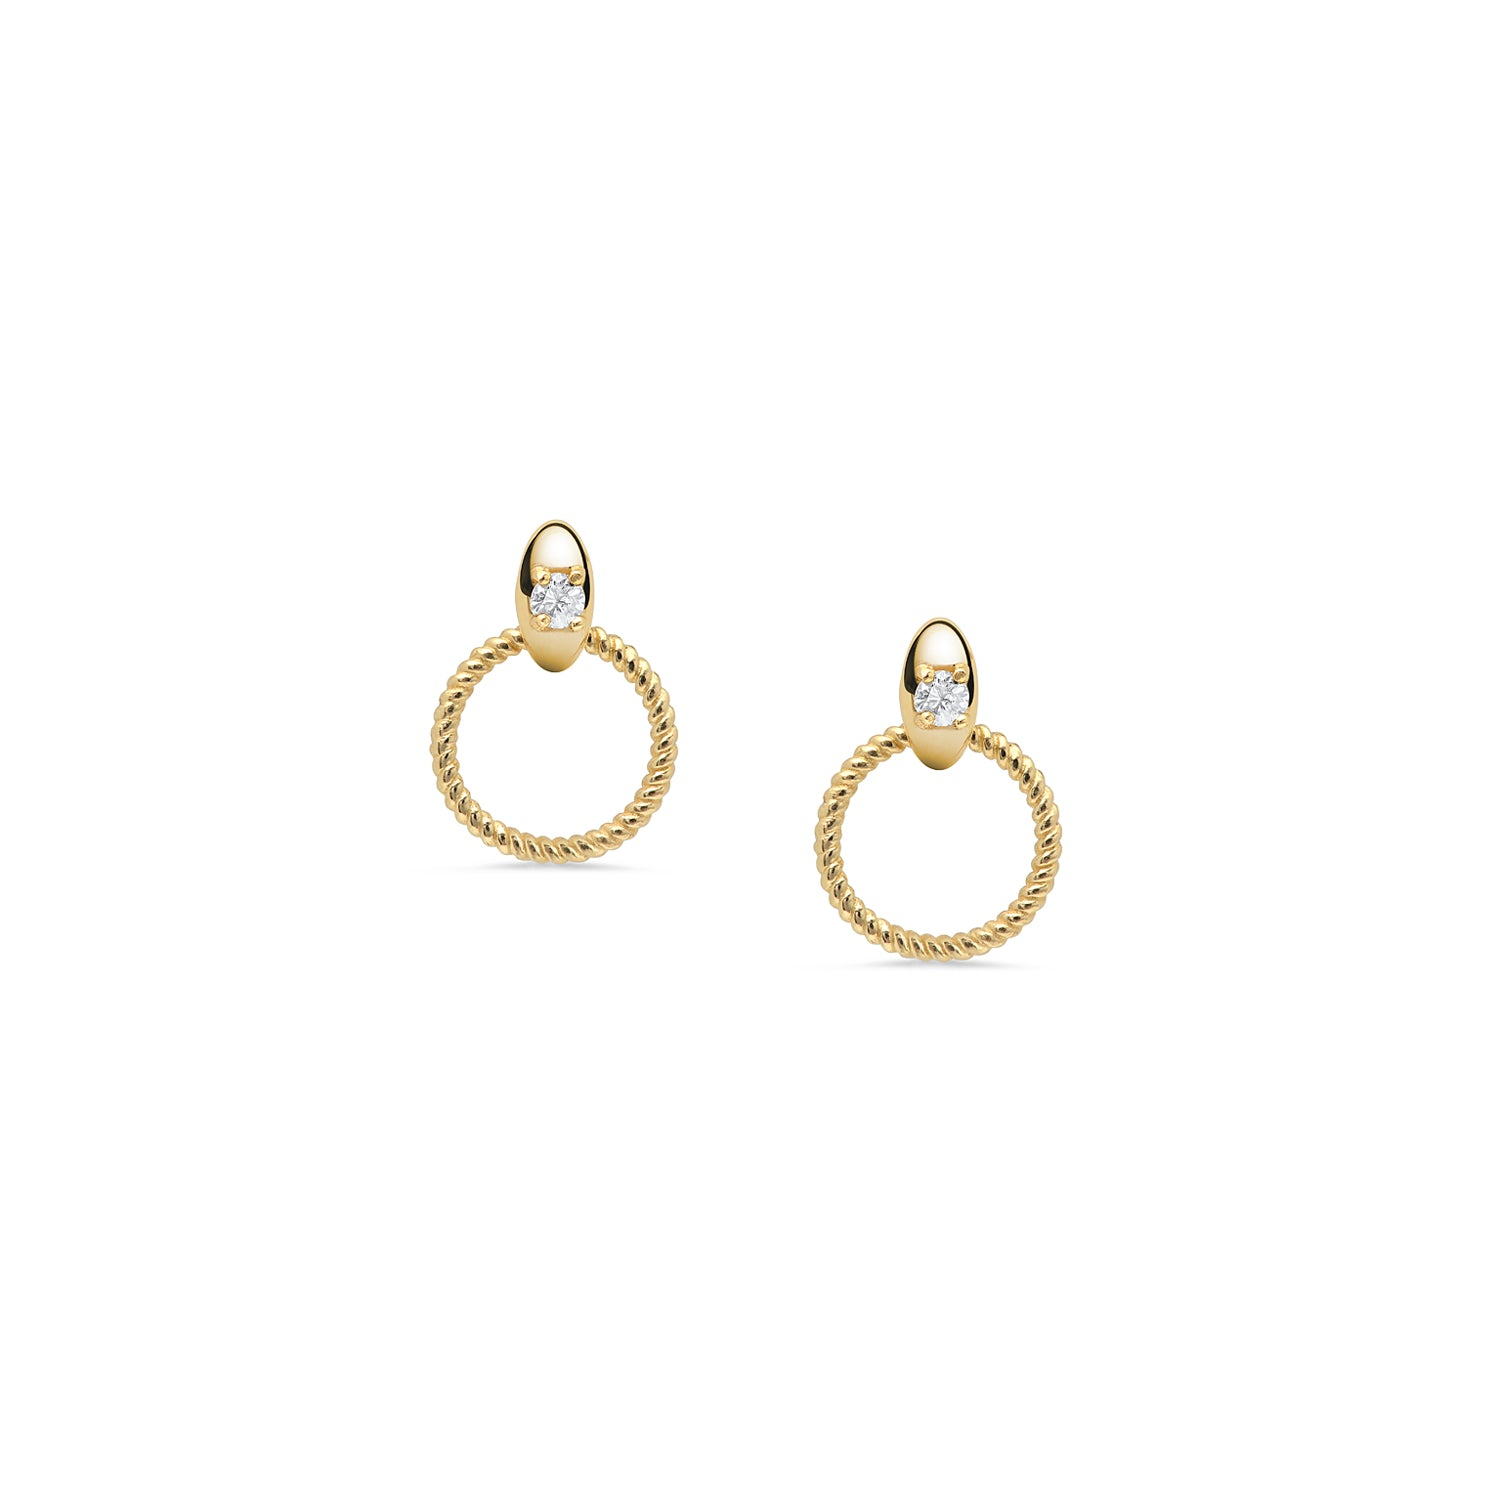 Are You Am I - Thysa FINE Earring